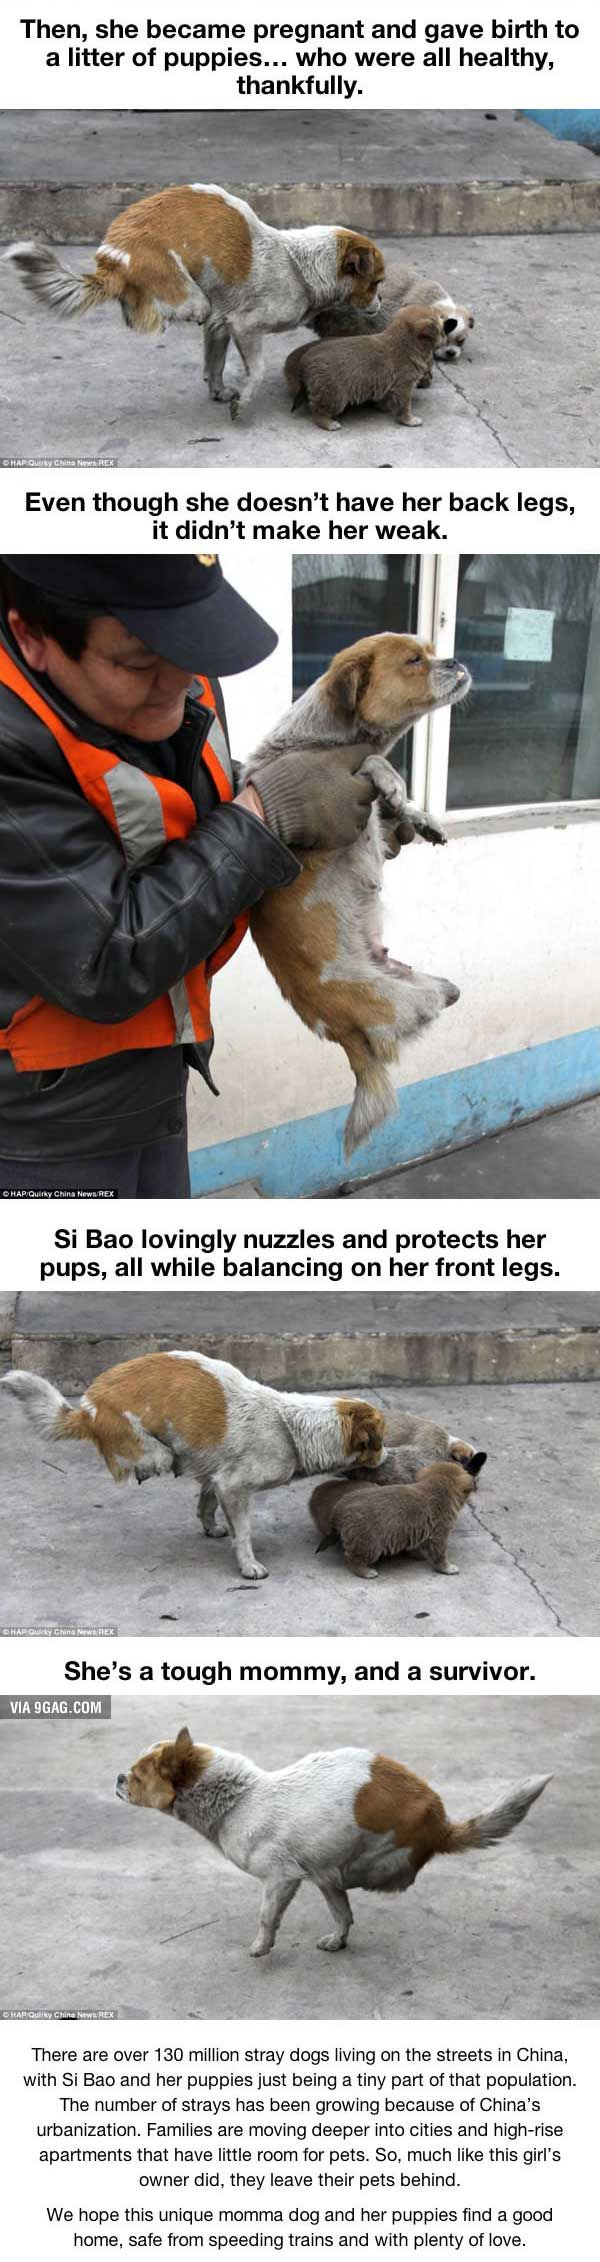 joindarkside » Seeing What This Stray Dog Did Will Hit You Hard!